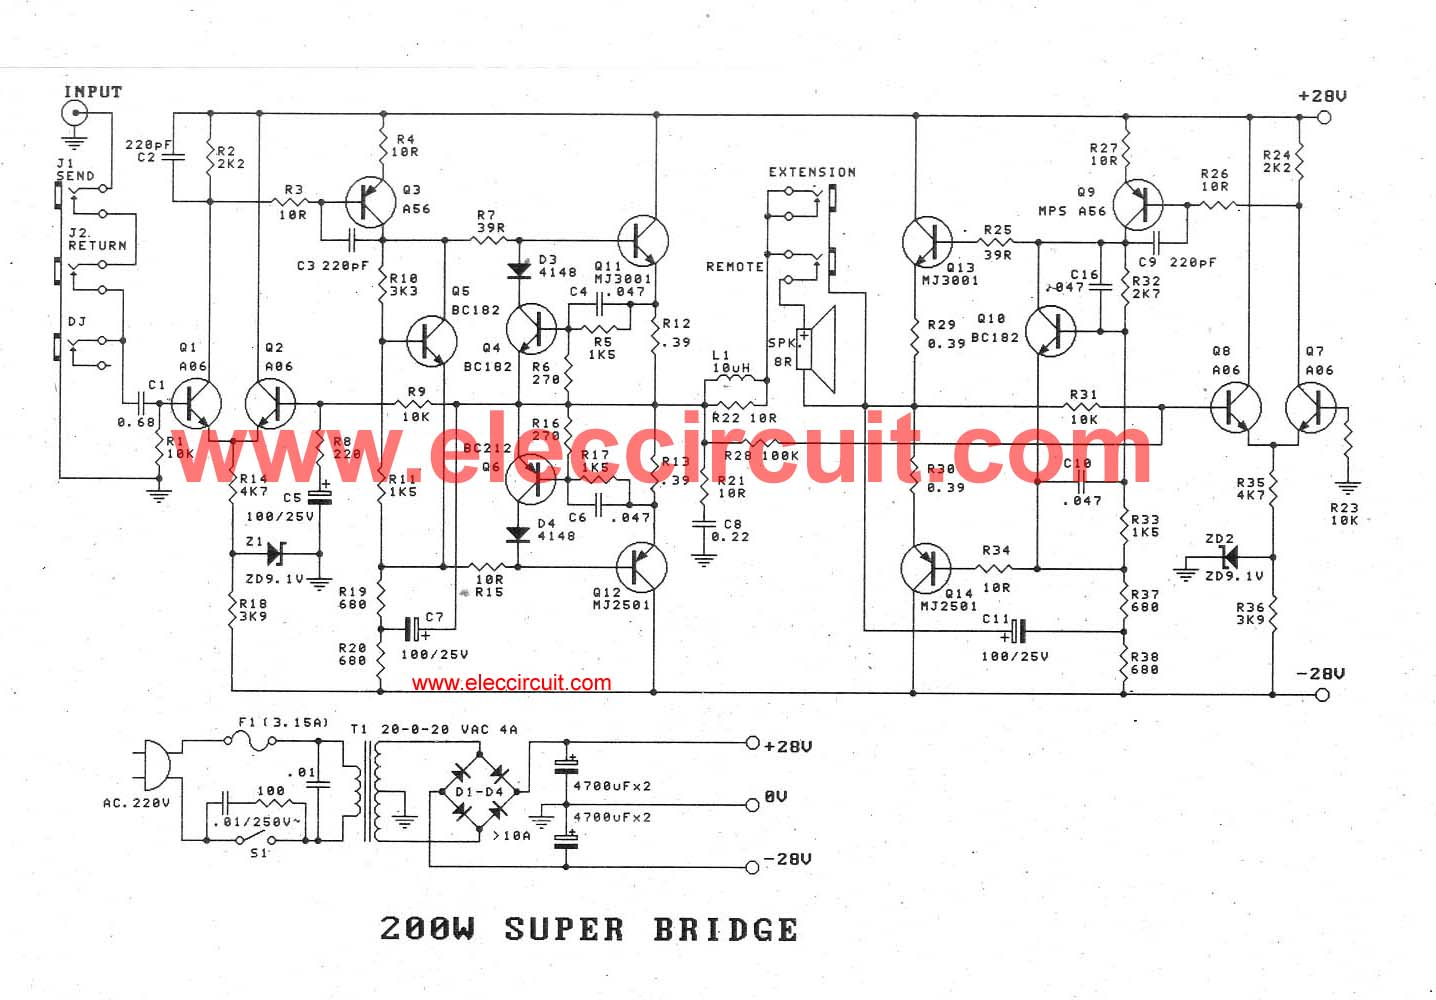 guitar amp wiring diagram application visio example 200w amplifier circuit with pcb layout